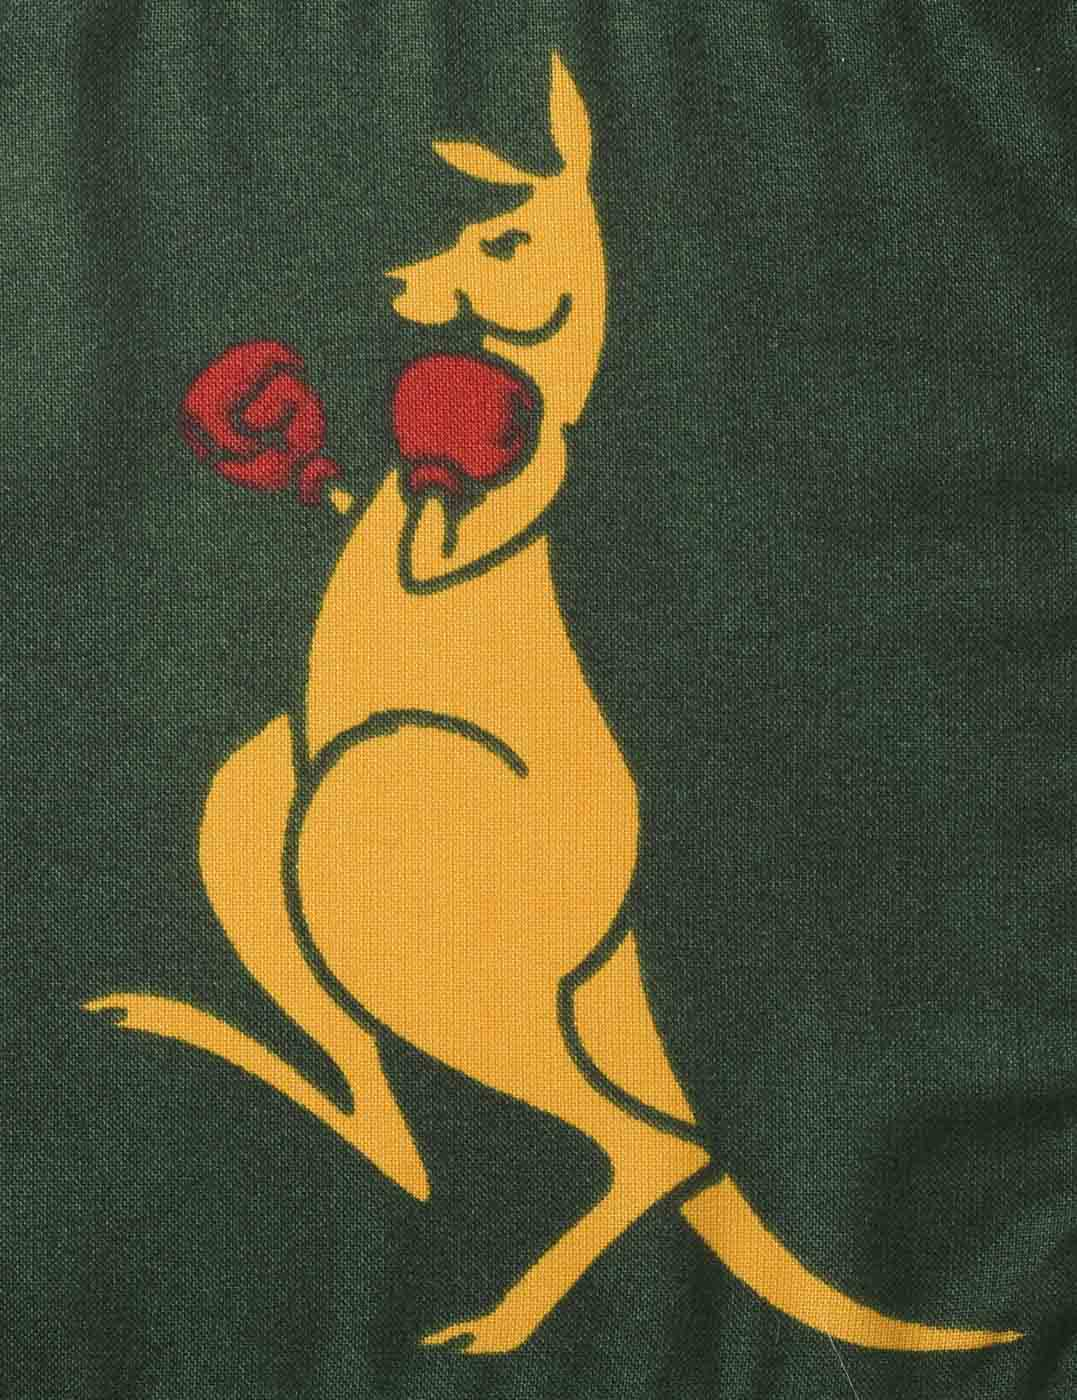 A flag with a cartoon of a yellow kangaroo wearing red boxing gloves. - click to view larger image